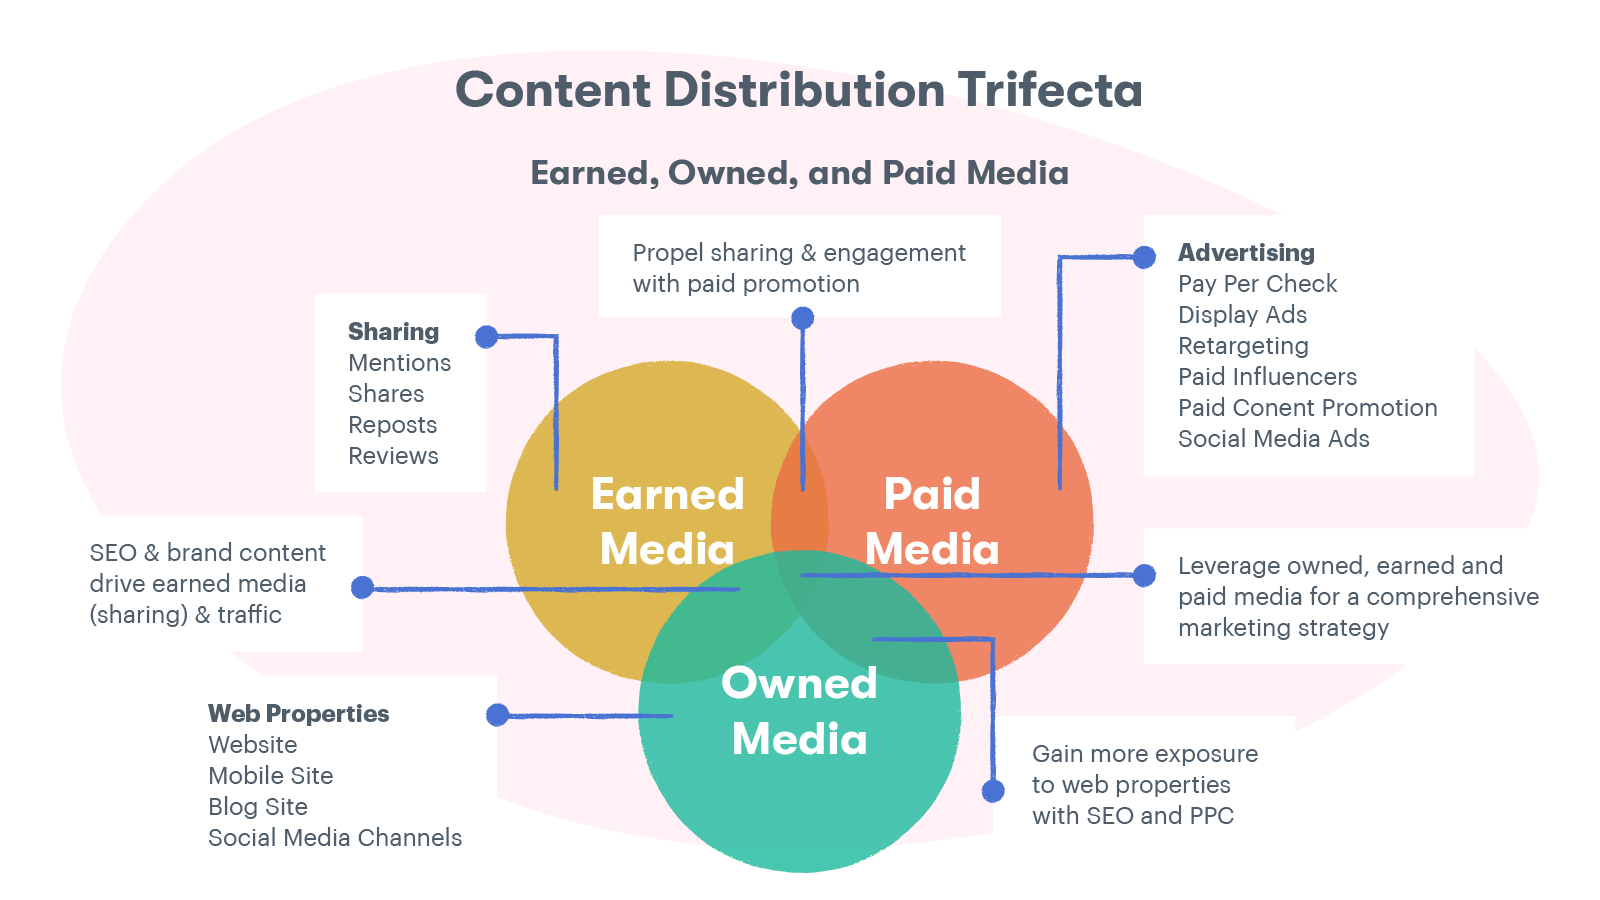 Content distribution trifecta: the difference between earned, owned, and paid media